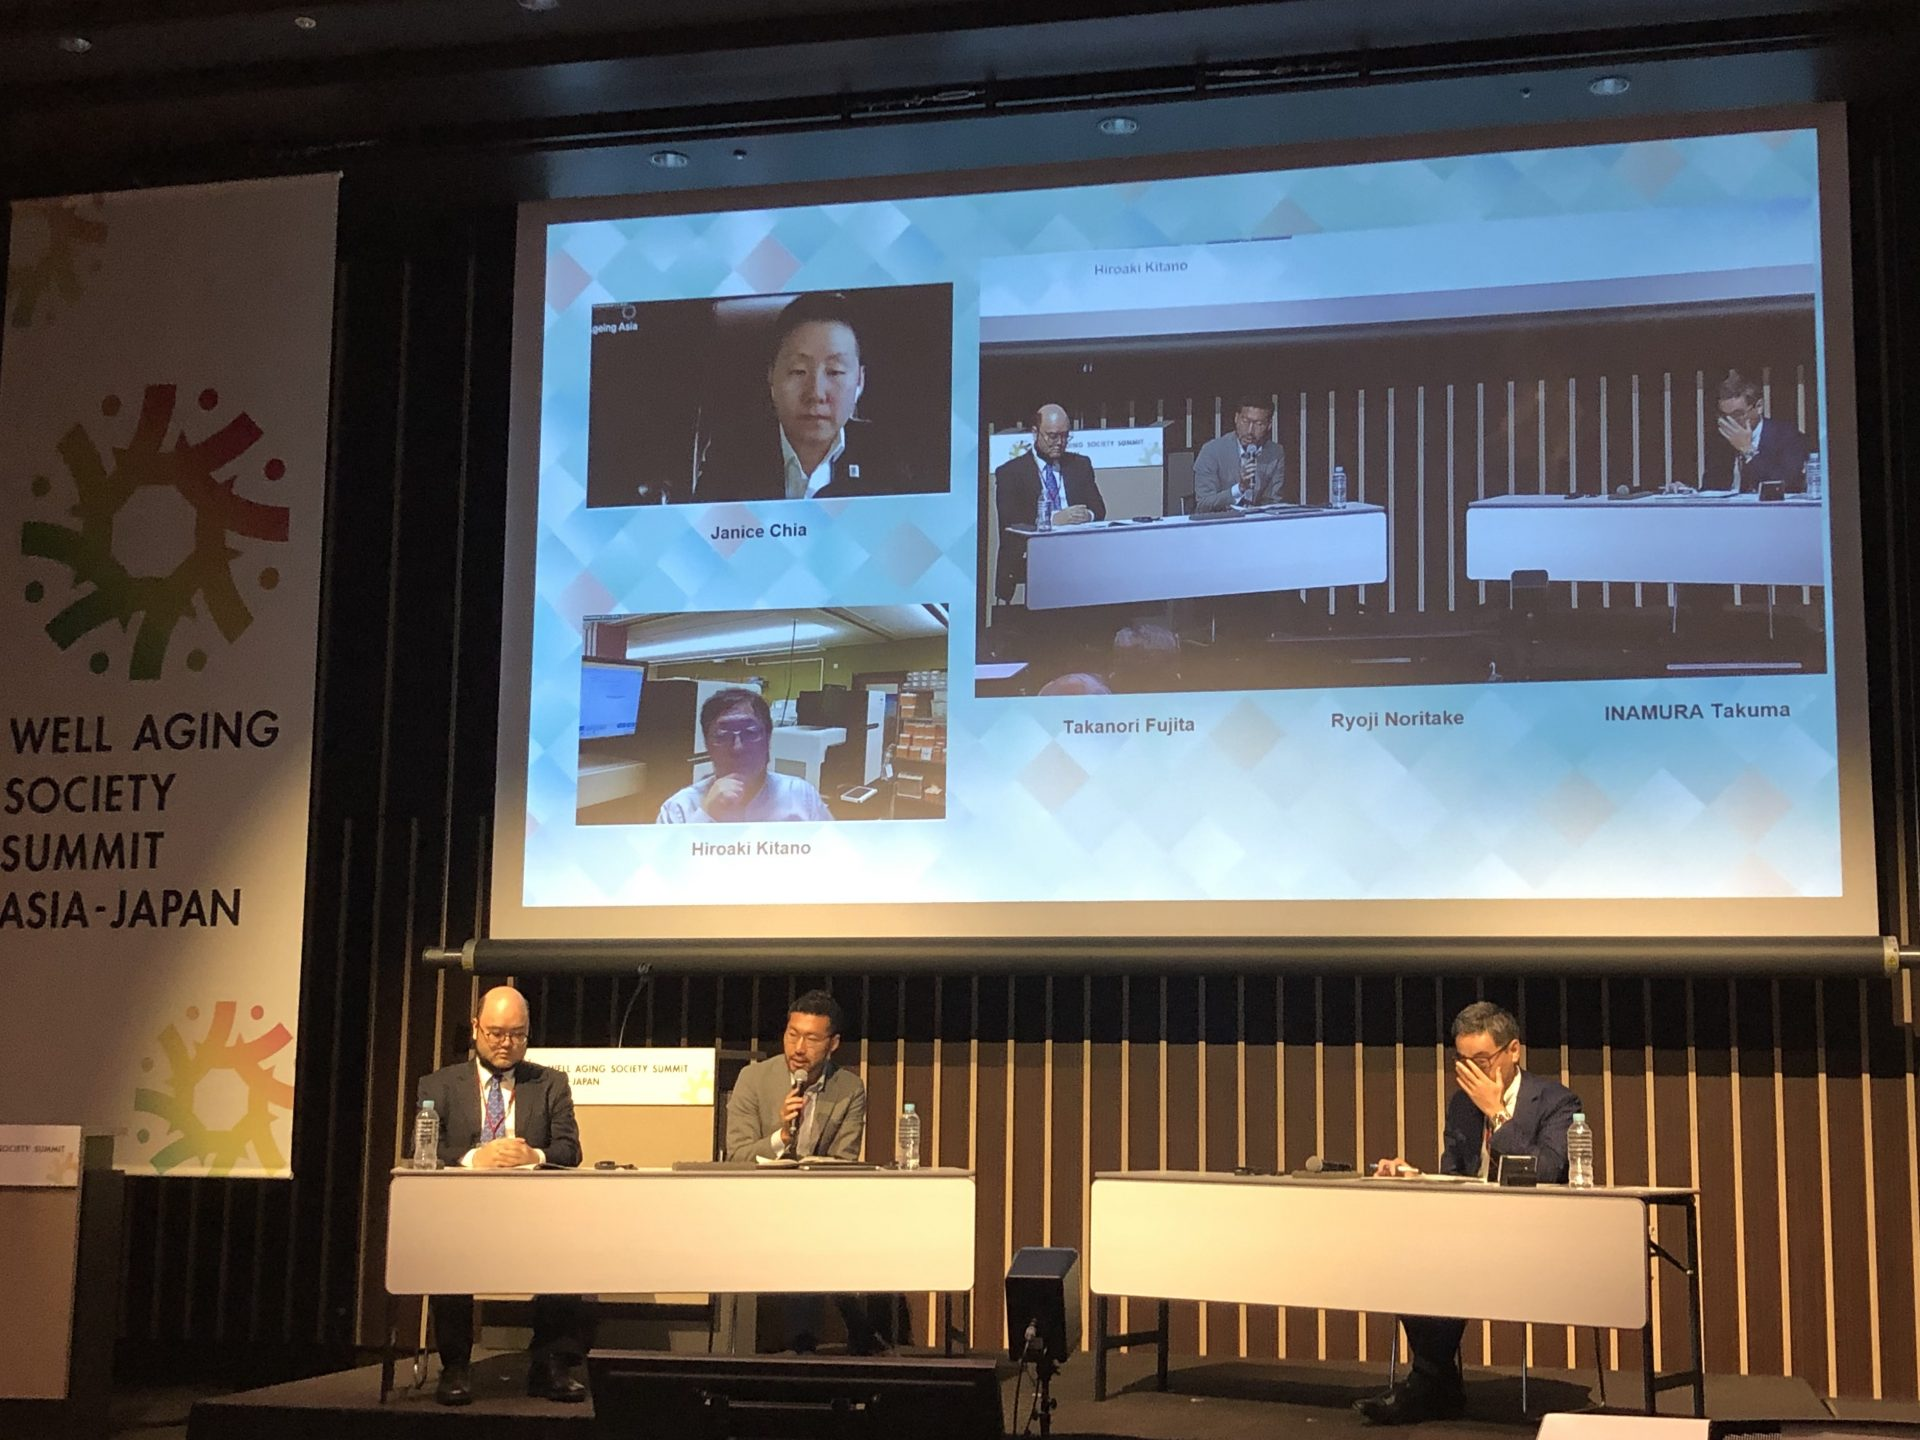 [Lecture Report] The 3rd Well Aging Society Summit Asia-Japan (the Ministry of Economy, Trade and Industry (METI), October 12, 2020, Chuo-ku, Tokyo)